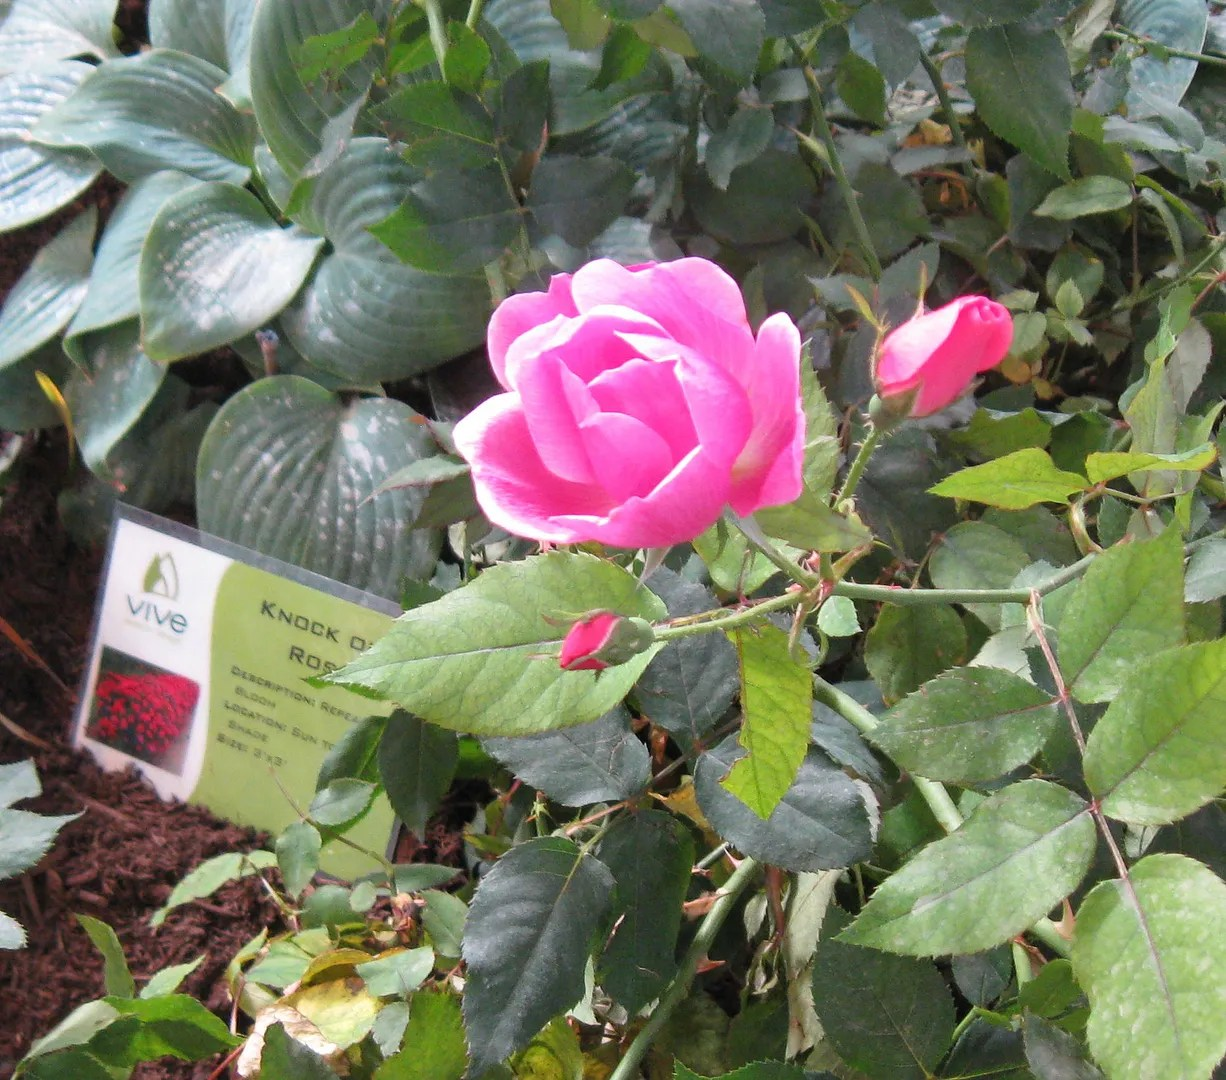 Indiana, Knock Out Rose